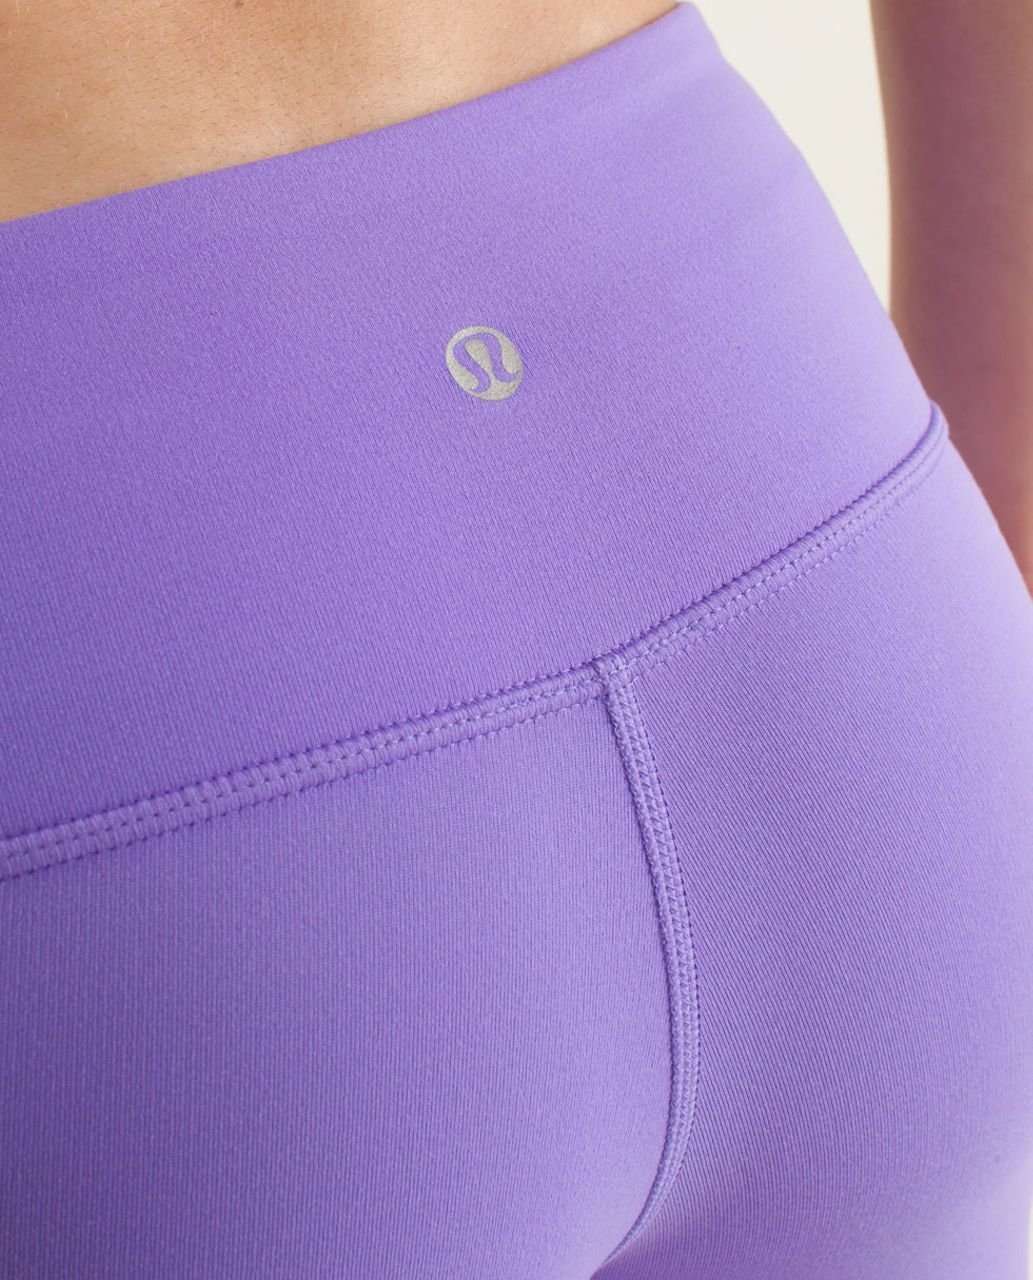 Lululemon Wunder Under Pant *Reversible - Power Purple / Aquamarine